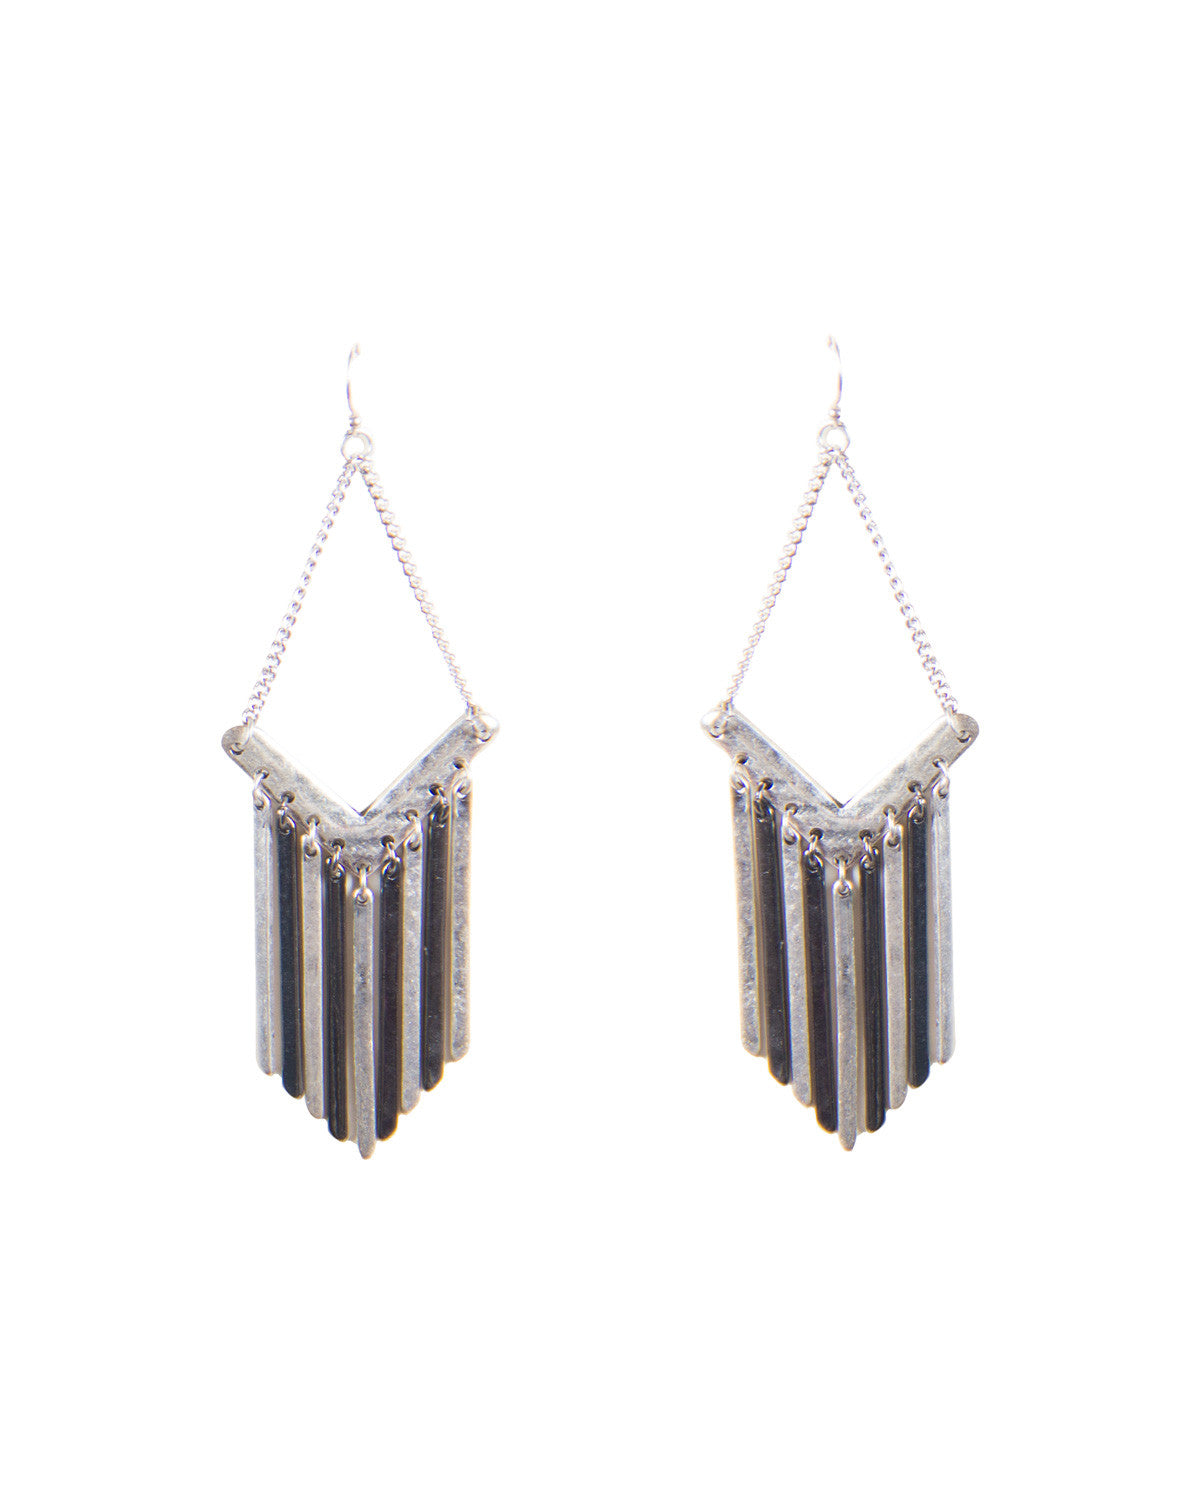 Downright Metal Fringe Earrings - Antique Silver - Ana ME 1880-Antique Silver